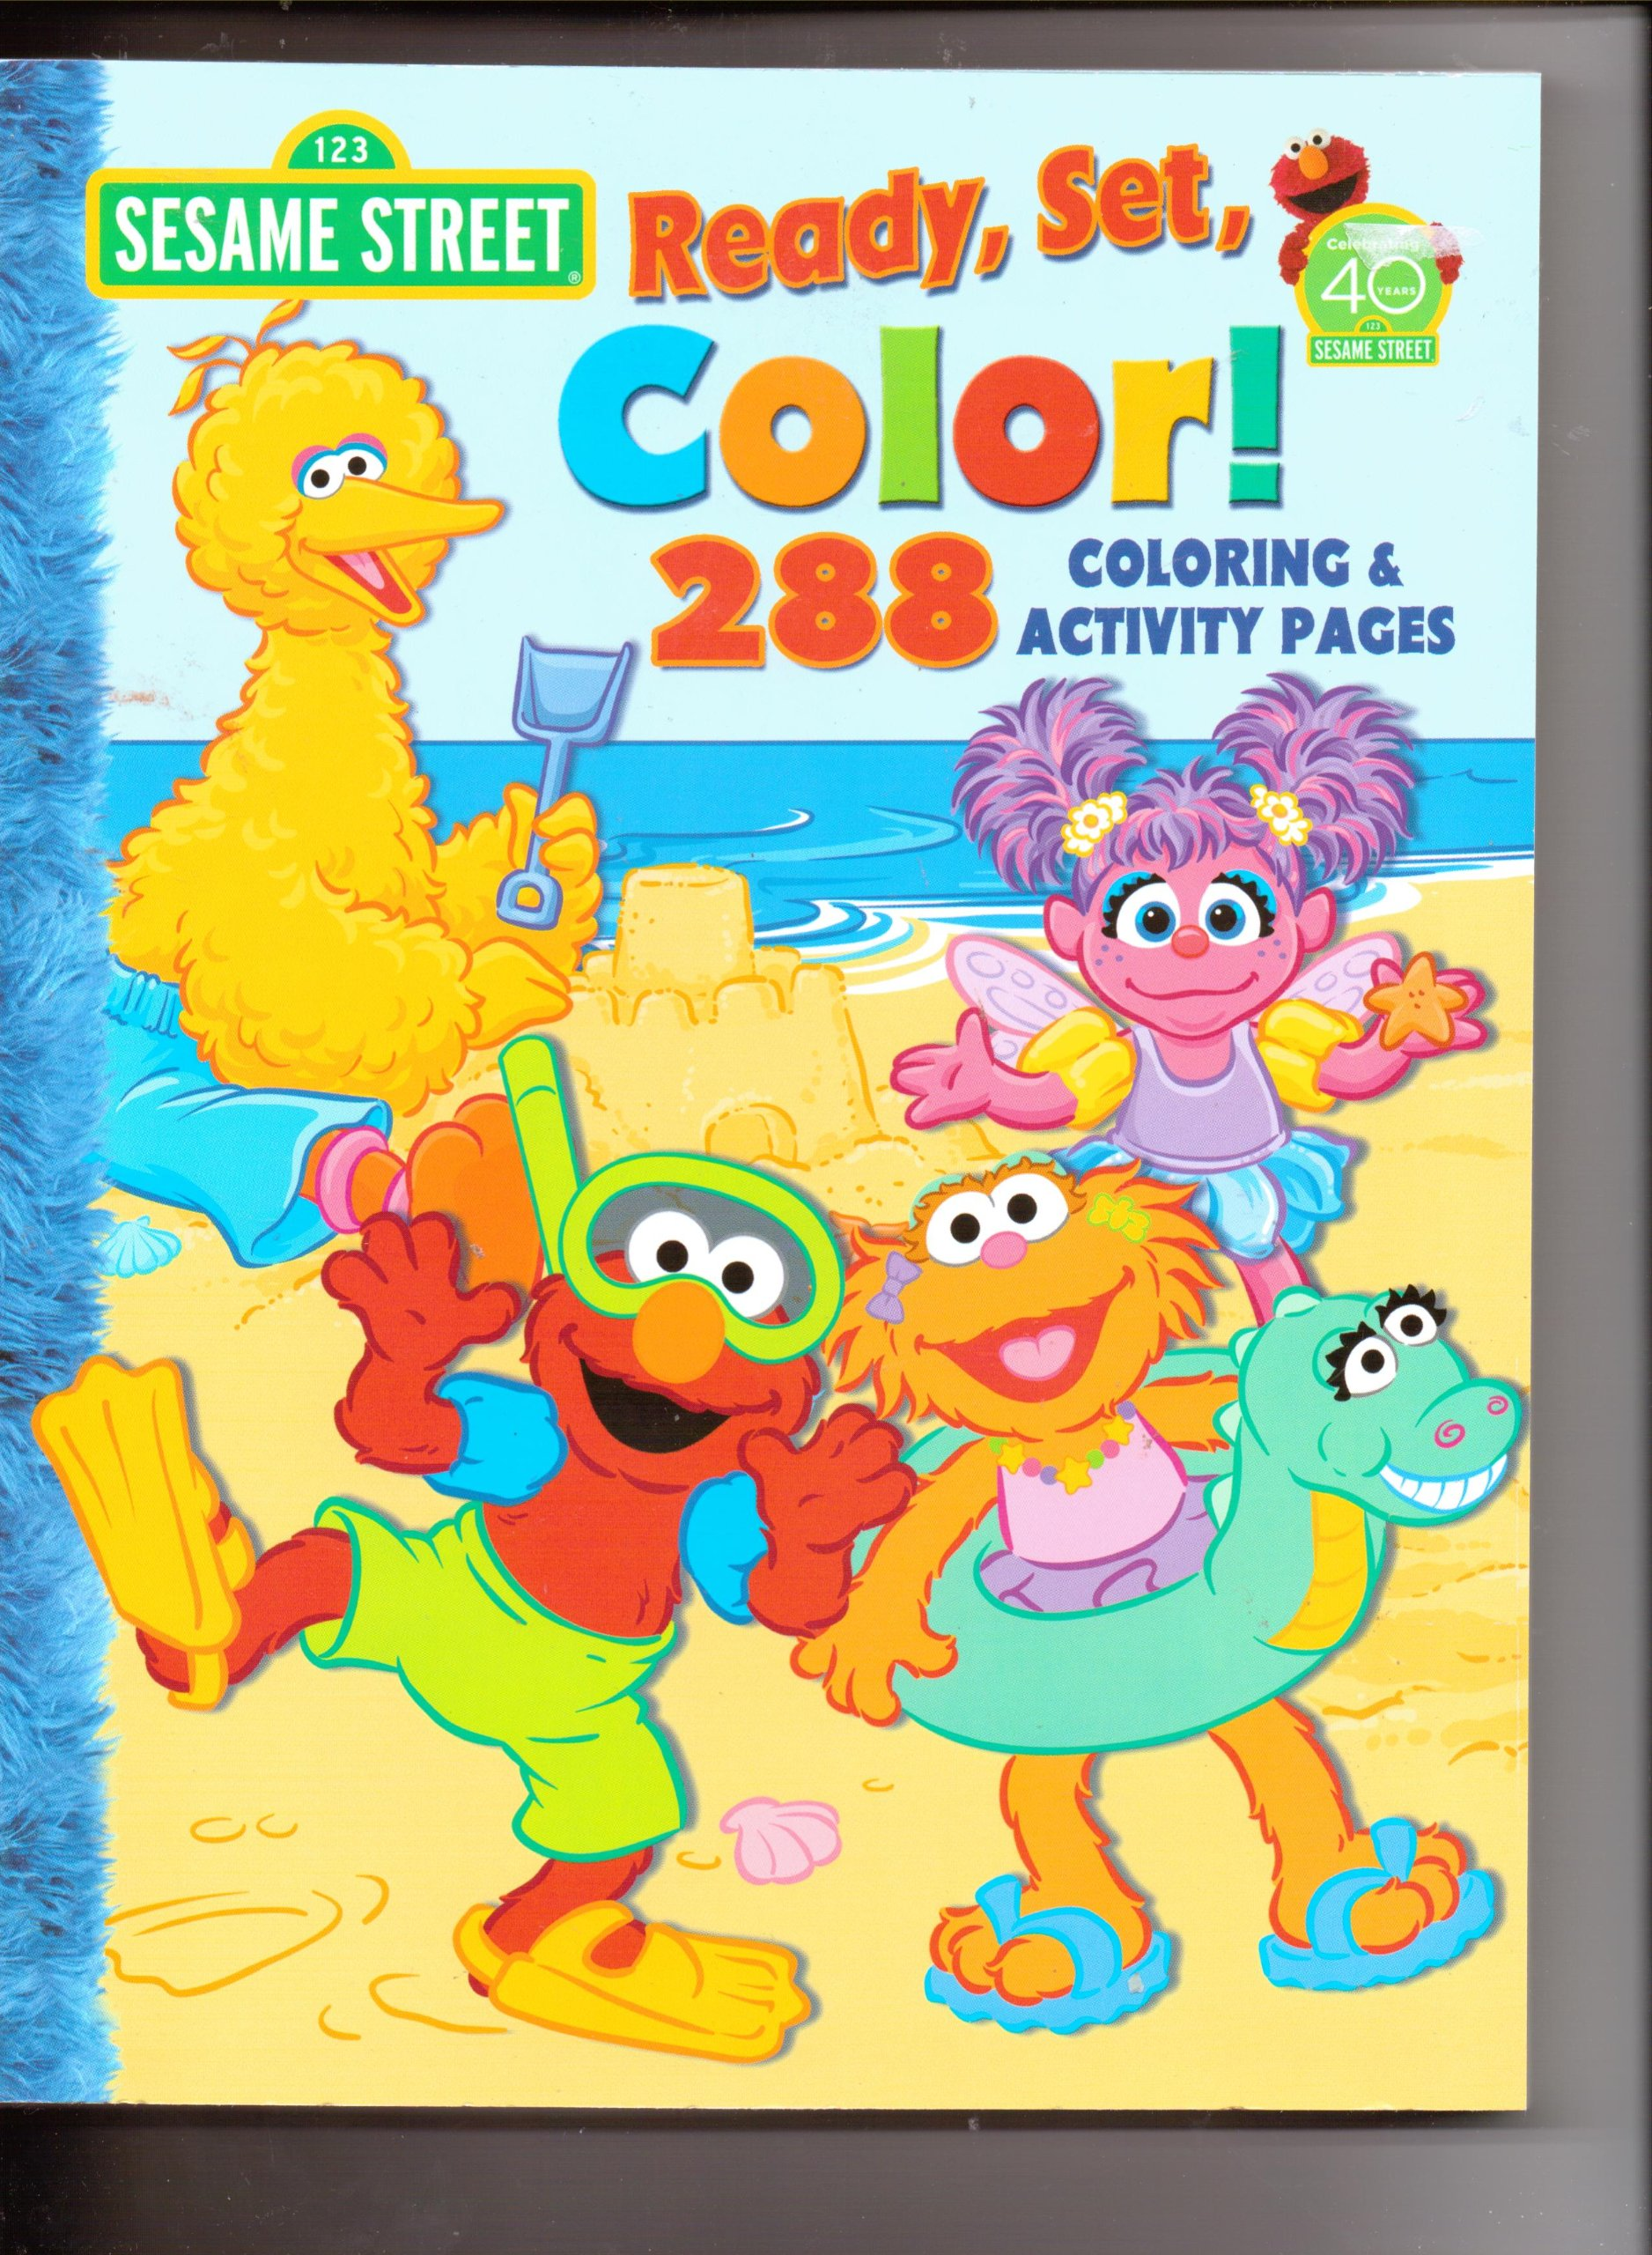 Sesame Street Ready, Set, Color! 288 coloring & Activity Pages ...